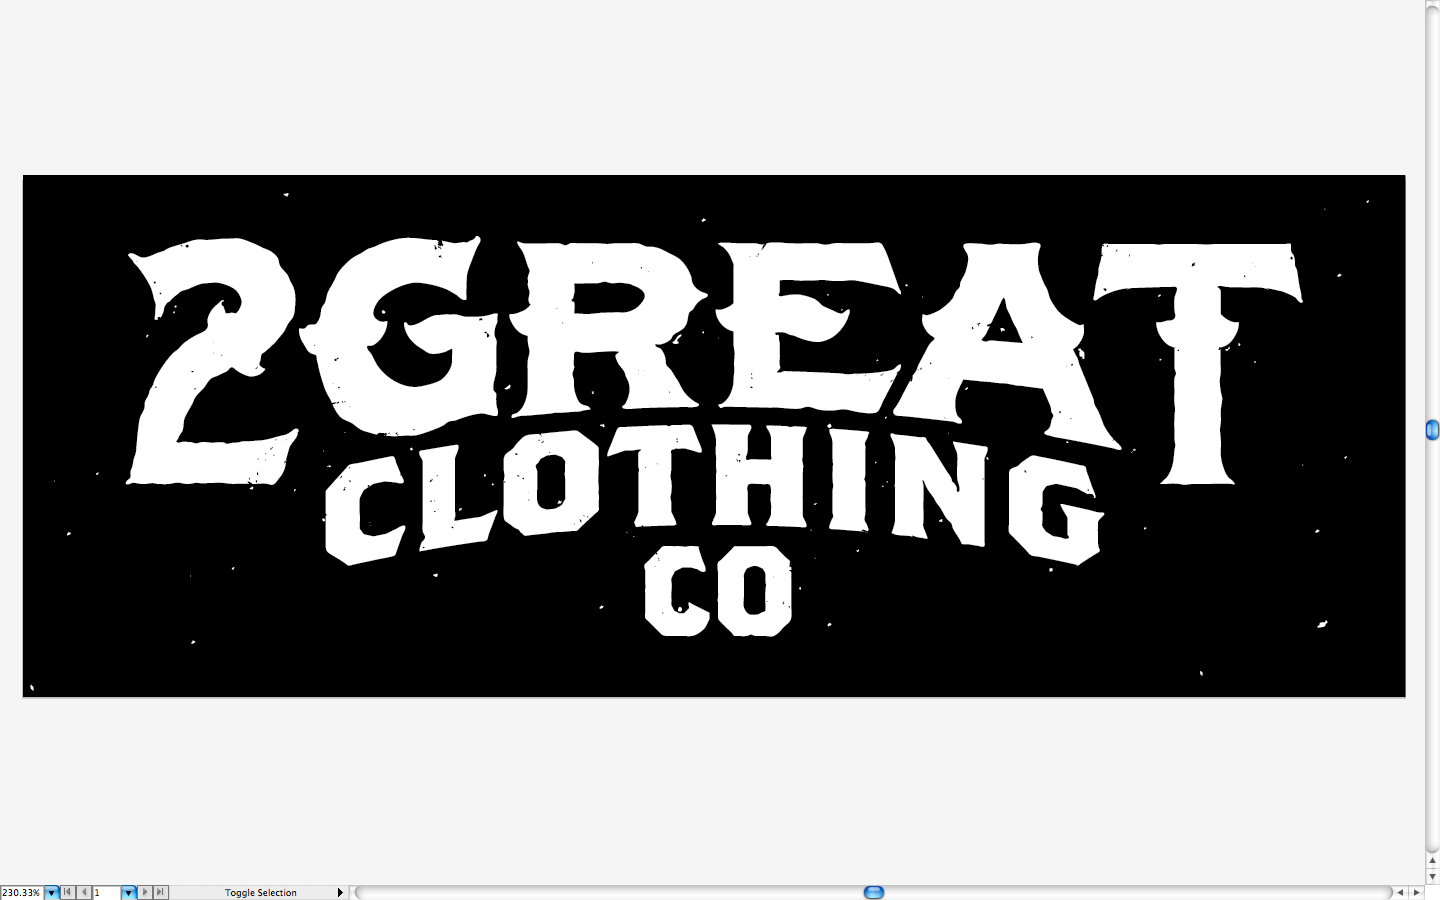 2Great Clothing Co. - image 29 - student project